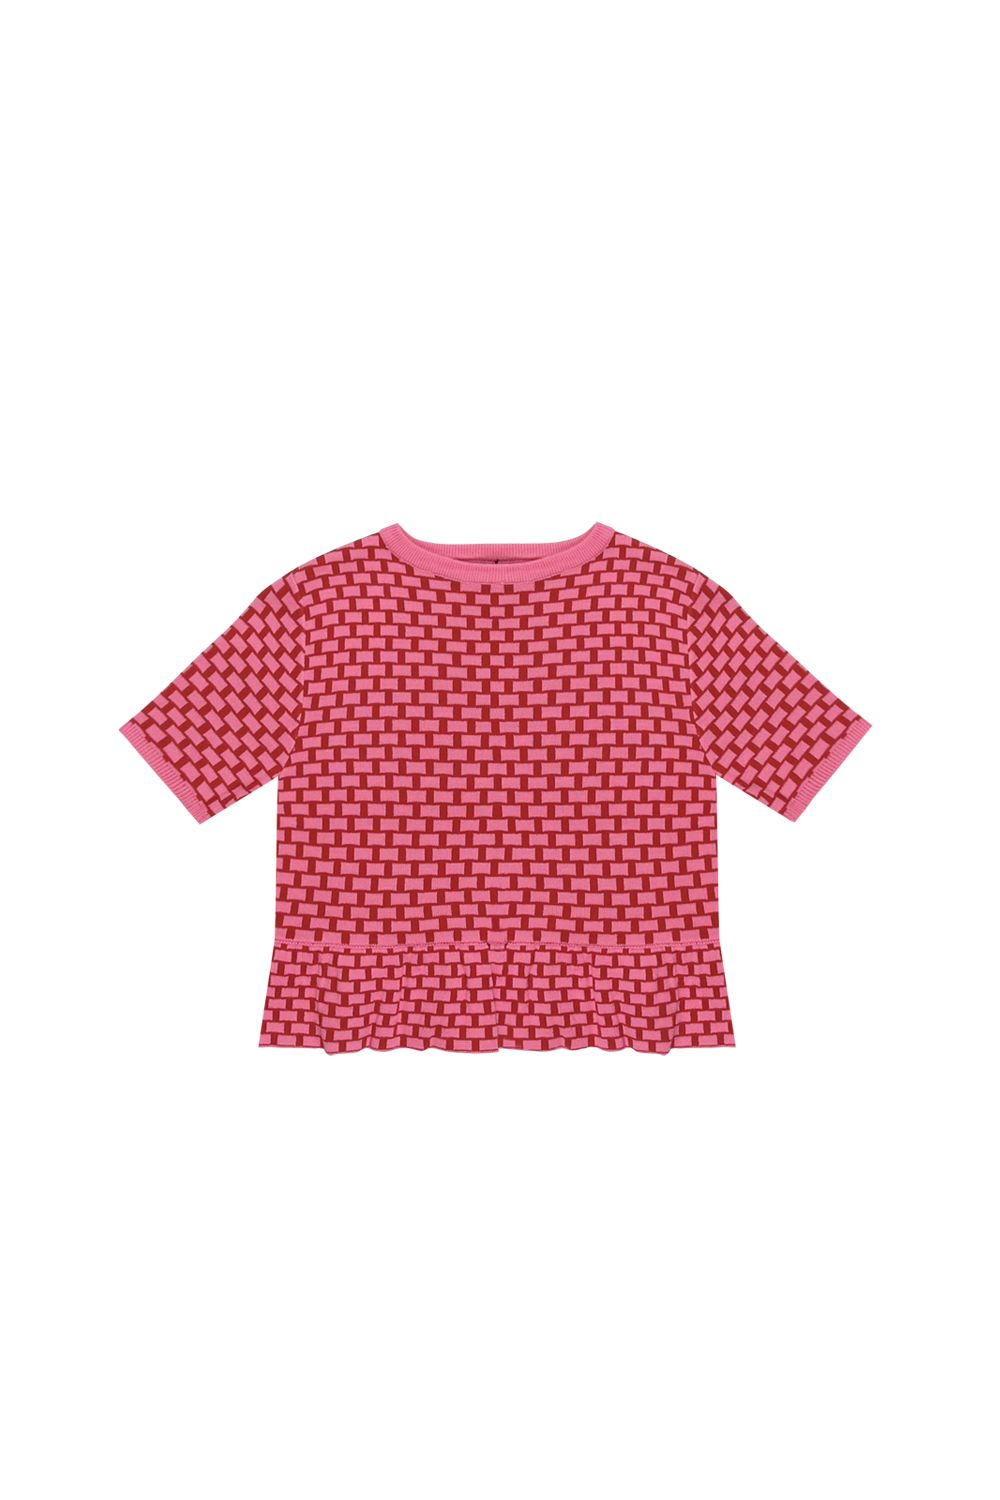 Peplum Knit Pattern Top http://www.thewhitepepper.com/collections/knitwear/products/peplum-knit-pattern-top